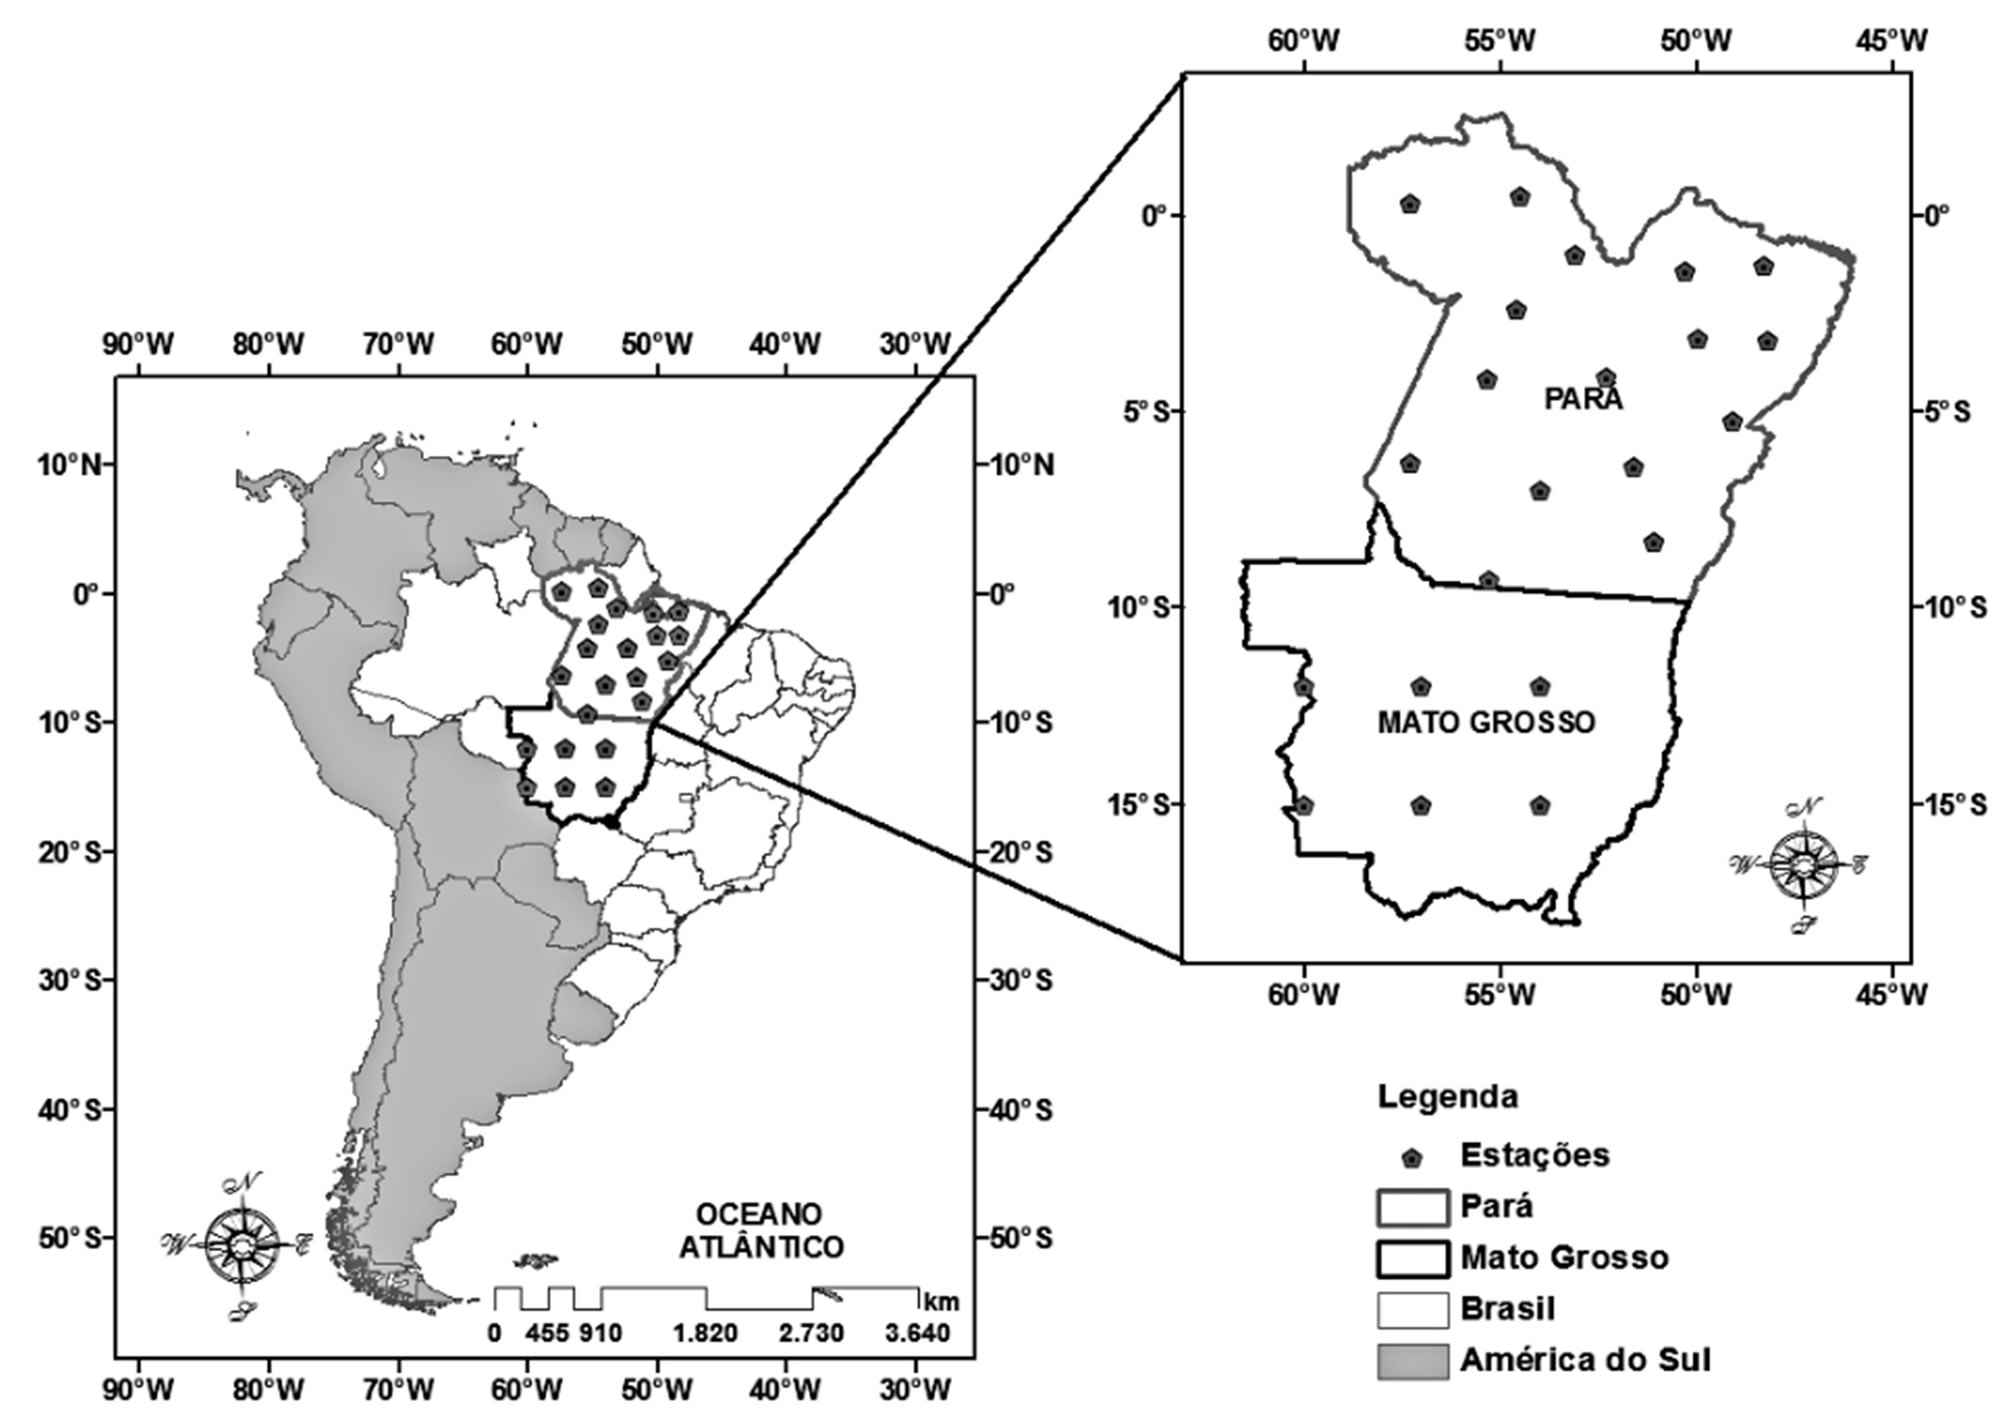 Mean And Interannual Variability Of Maize And Soybean In